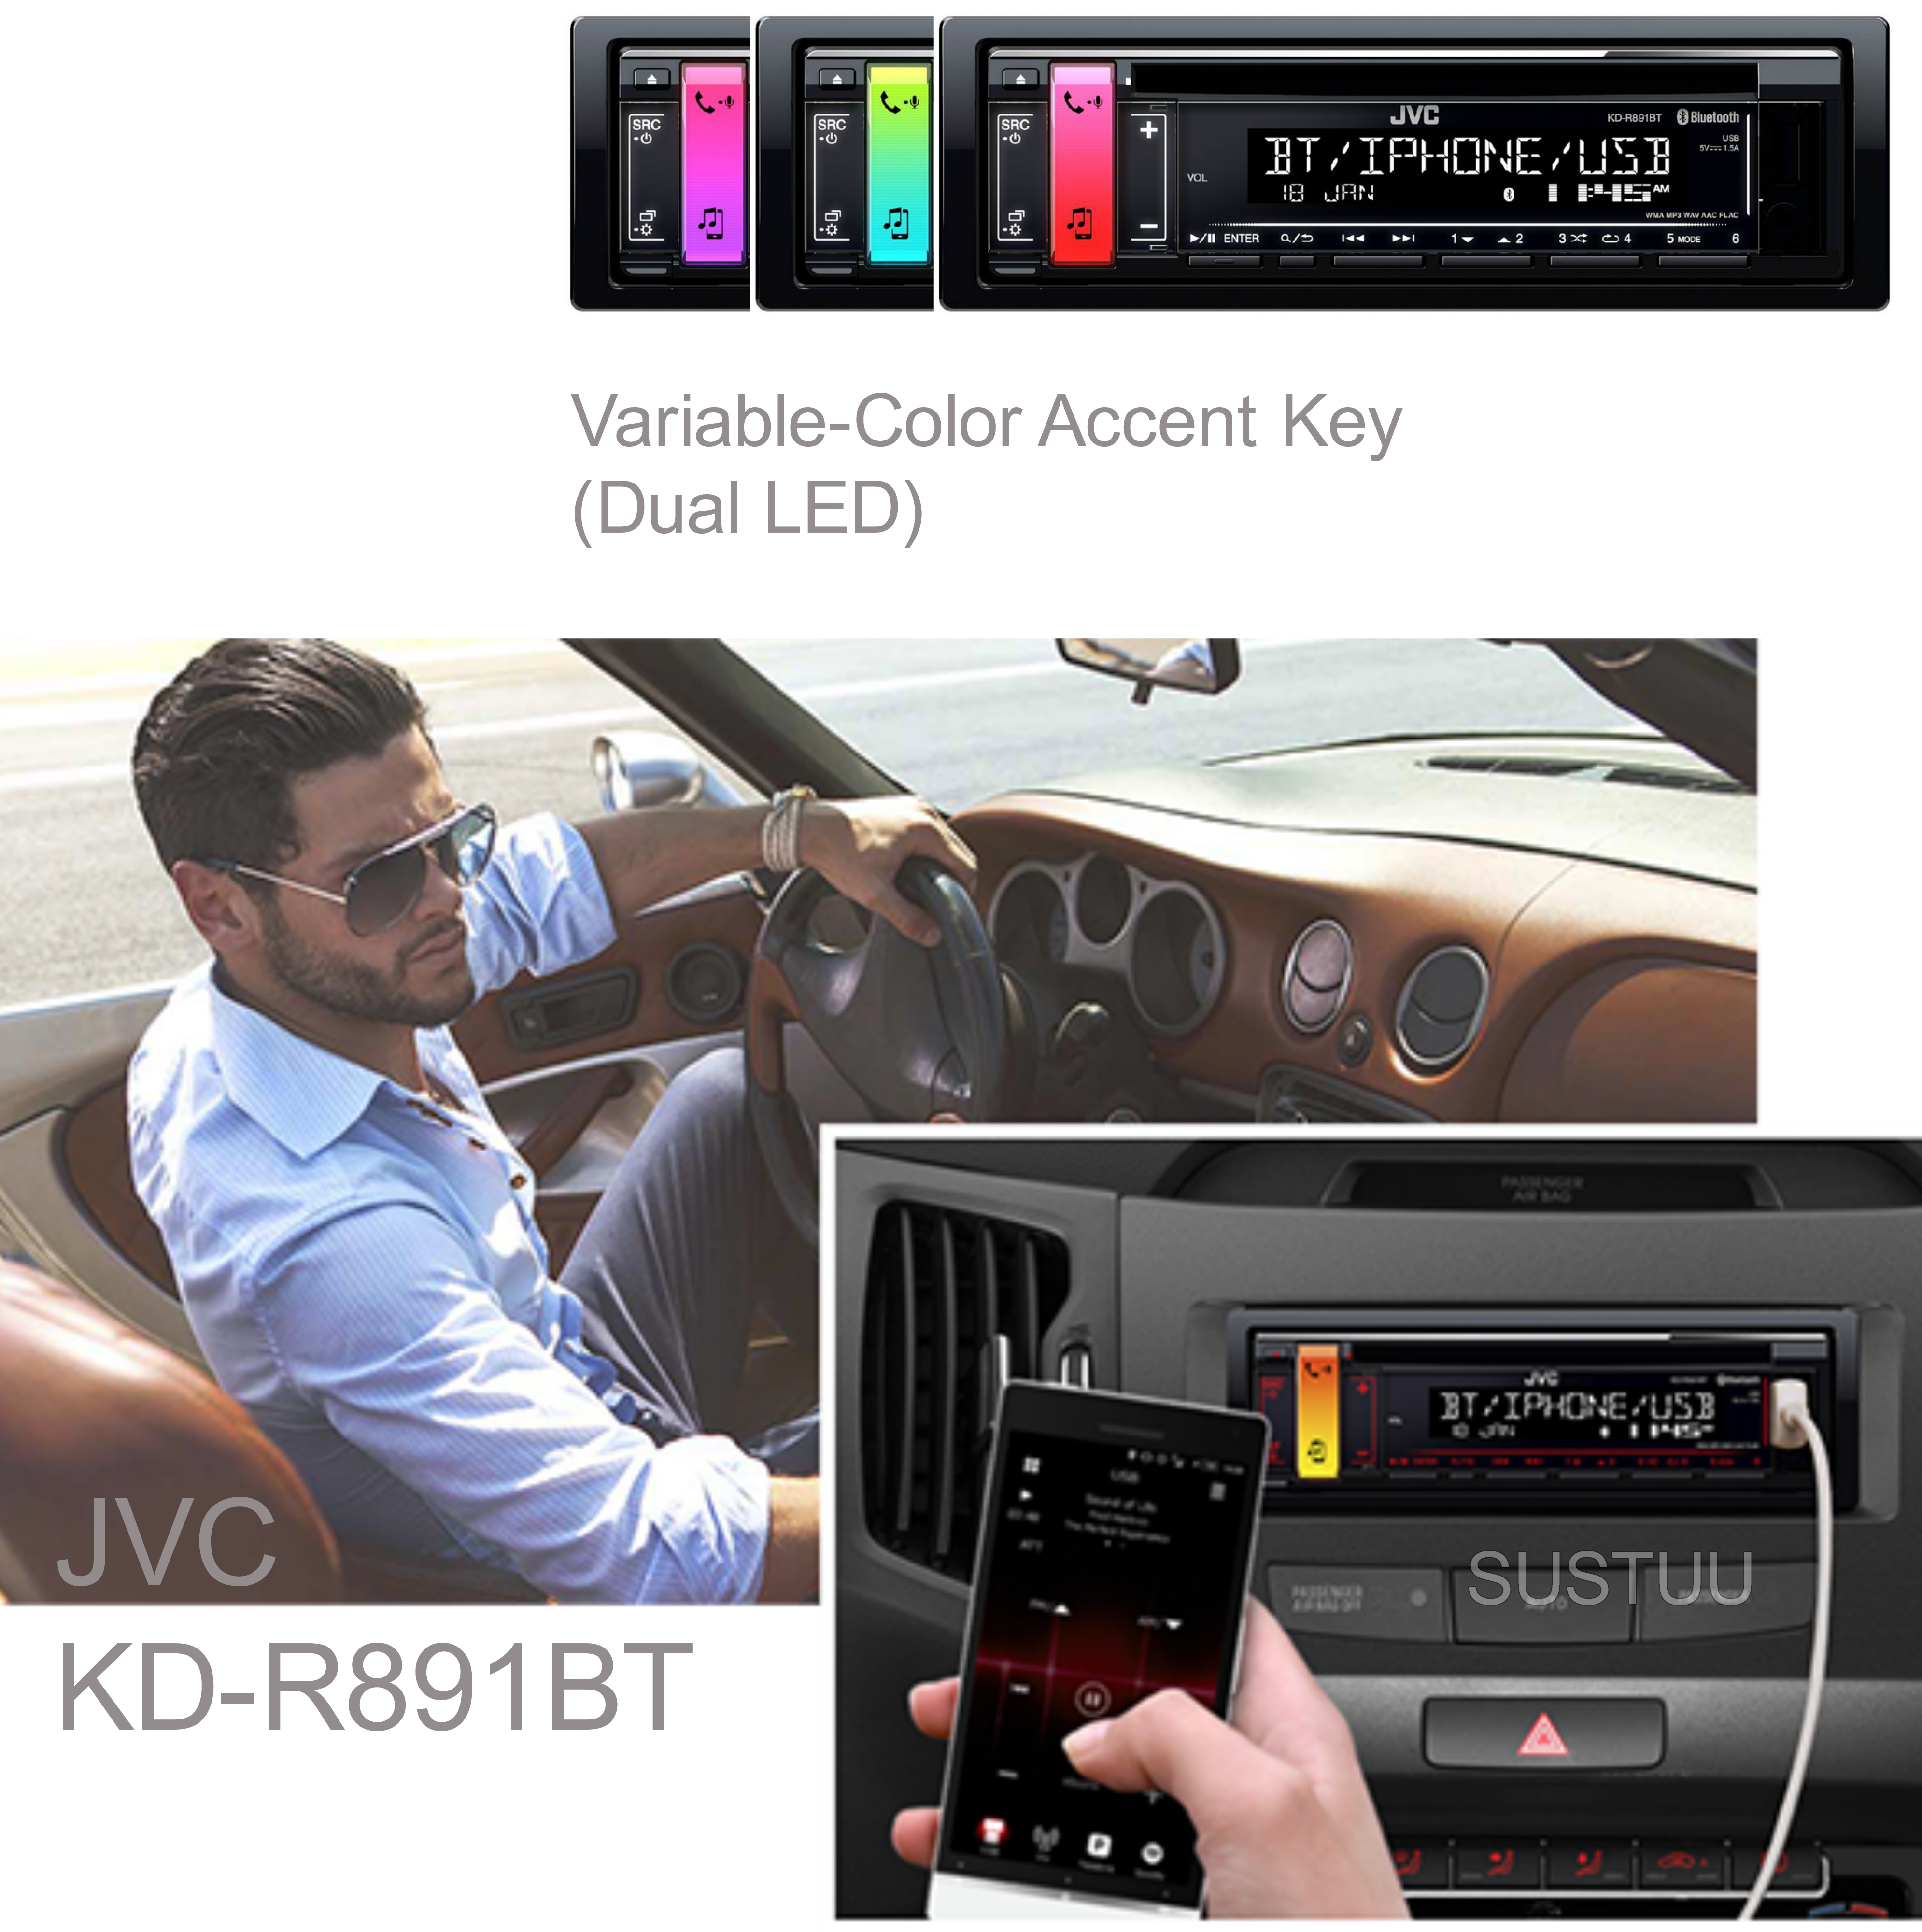 JVC Car Stereo|Radio|CD|MP3|USB|AUX|Bluetooth|iPod-iPhone-Android-Blackberry|New